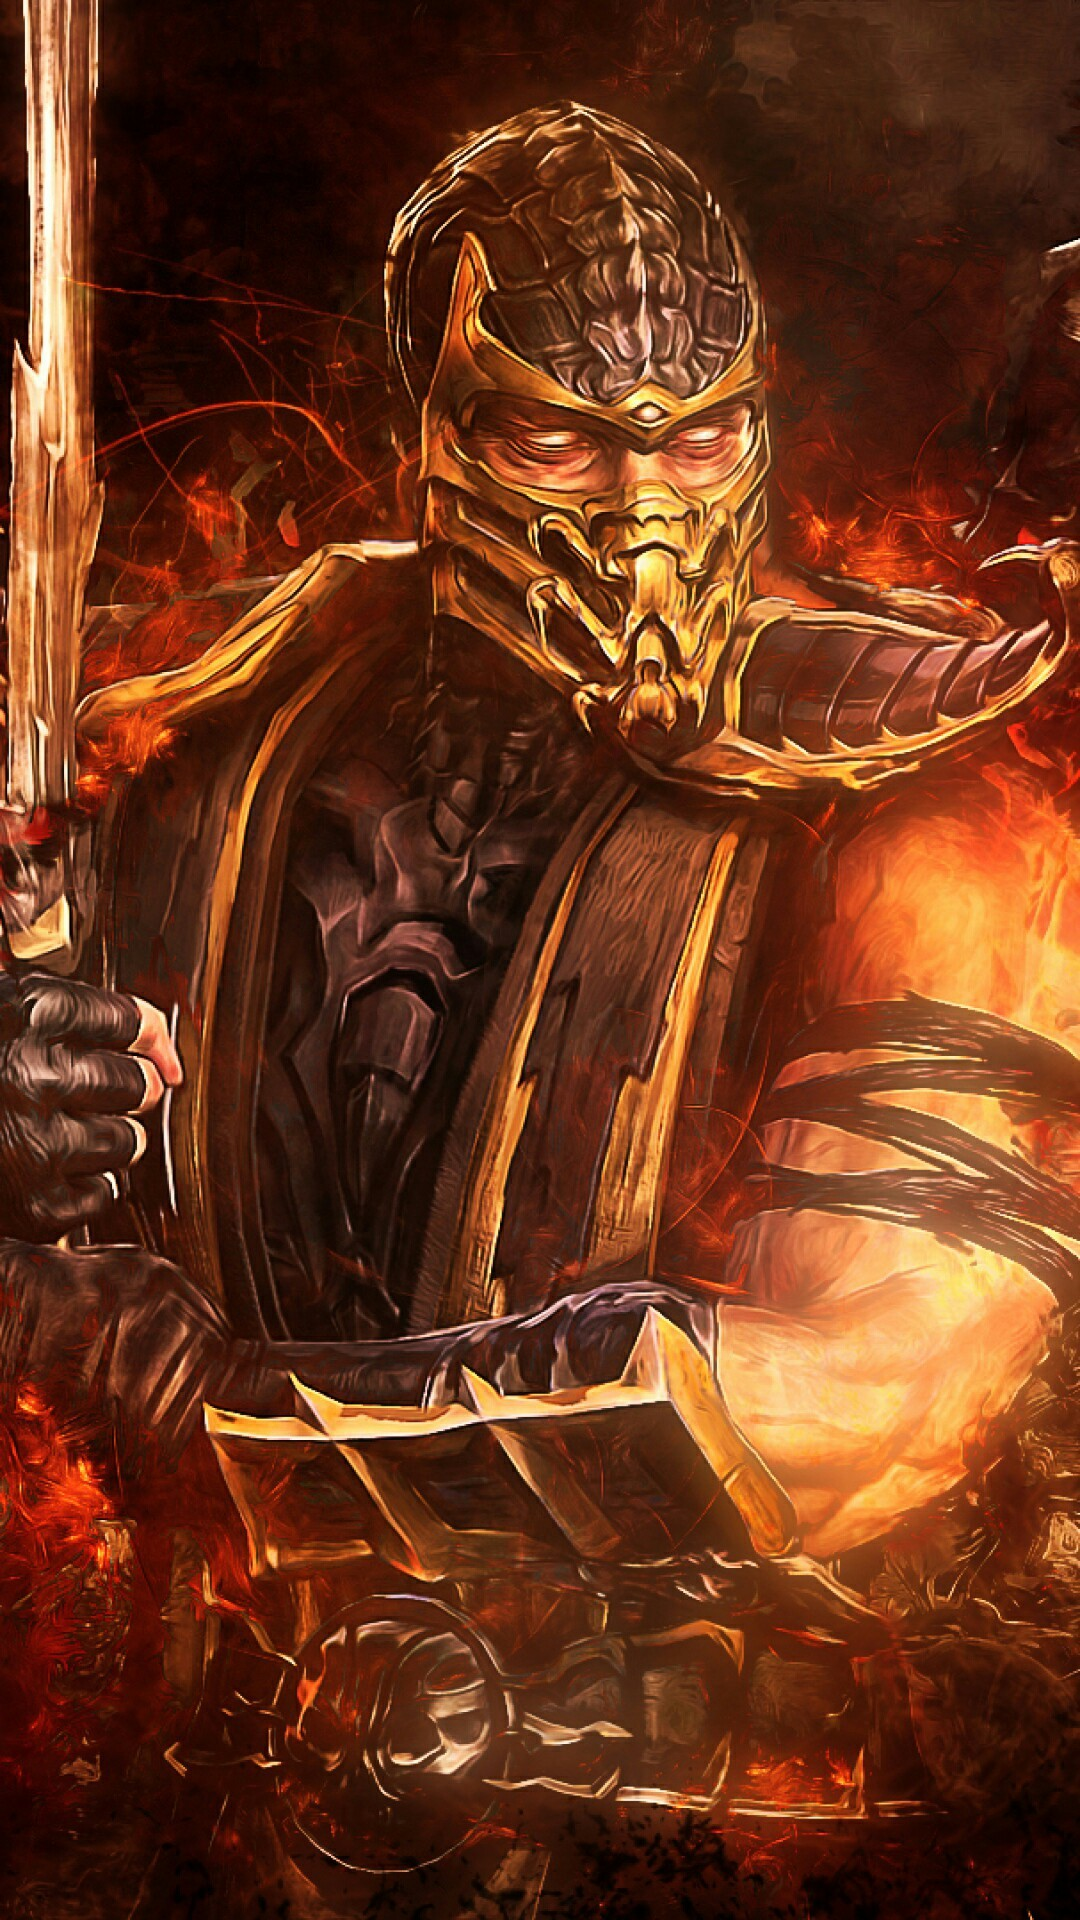 Scorpion iphone wallpaper 74 images - Mortal kombat scorpion wallpaper ...